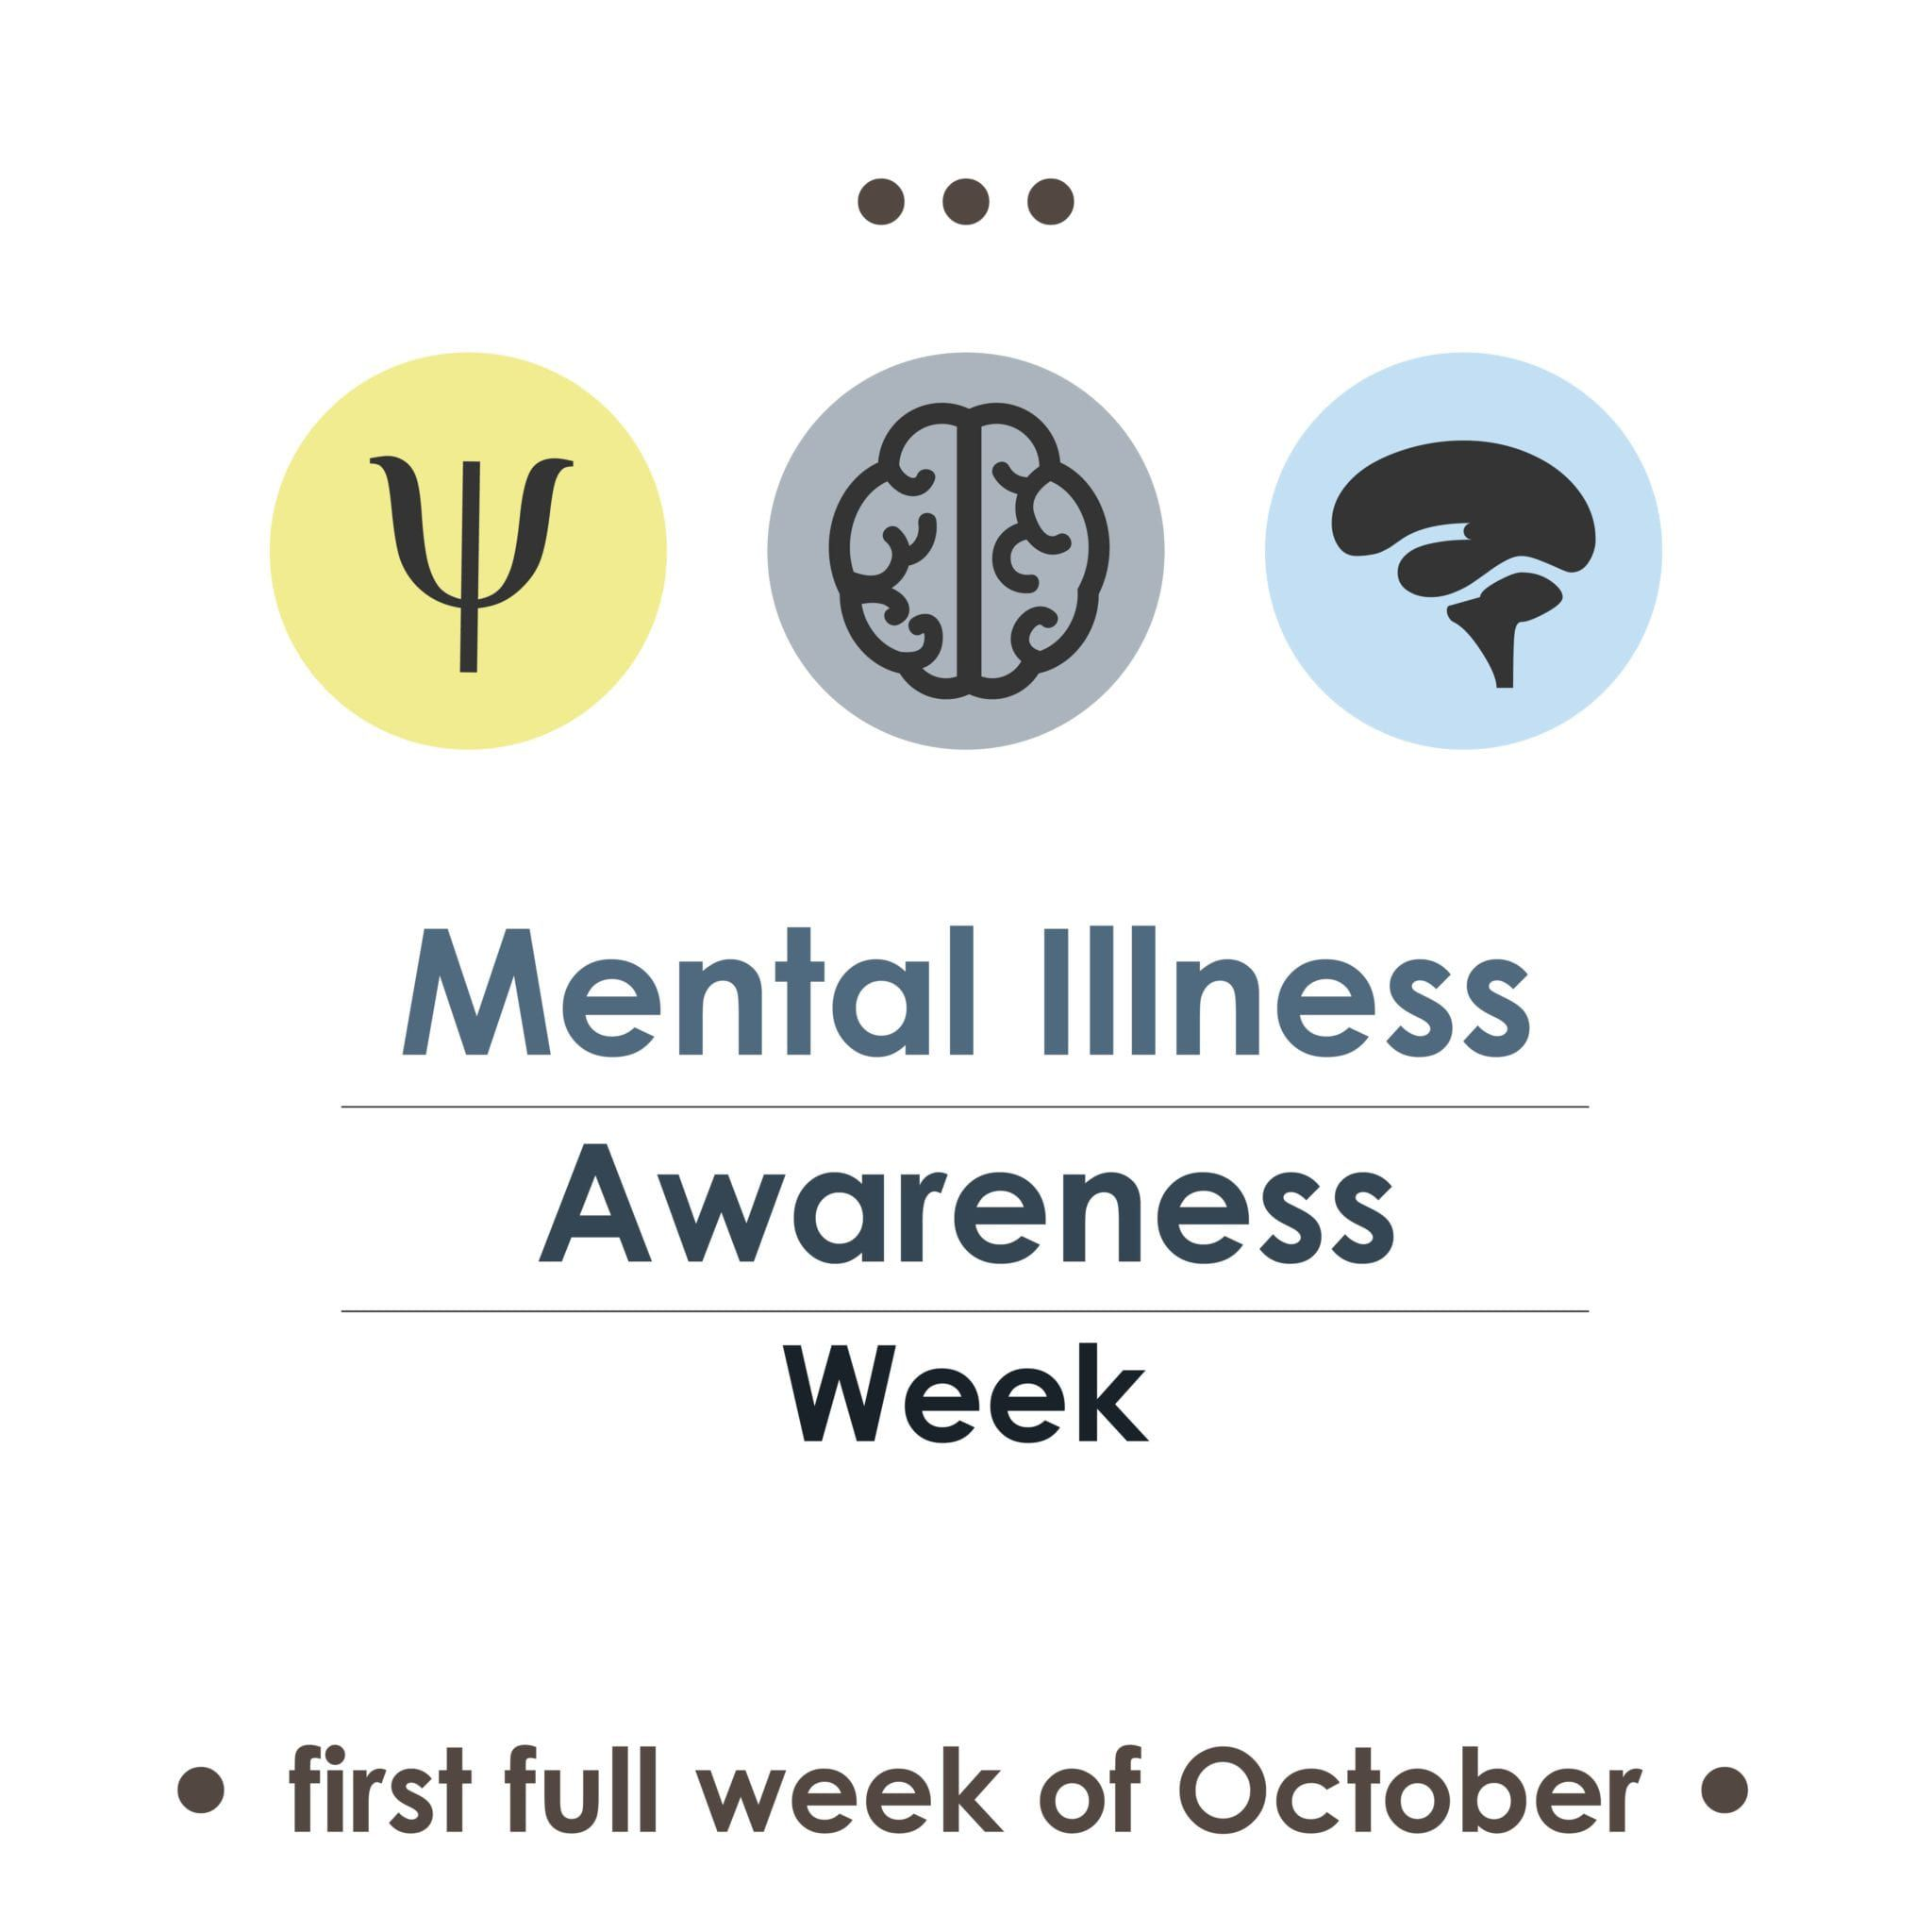 Banner for mental illness awareness week in October